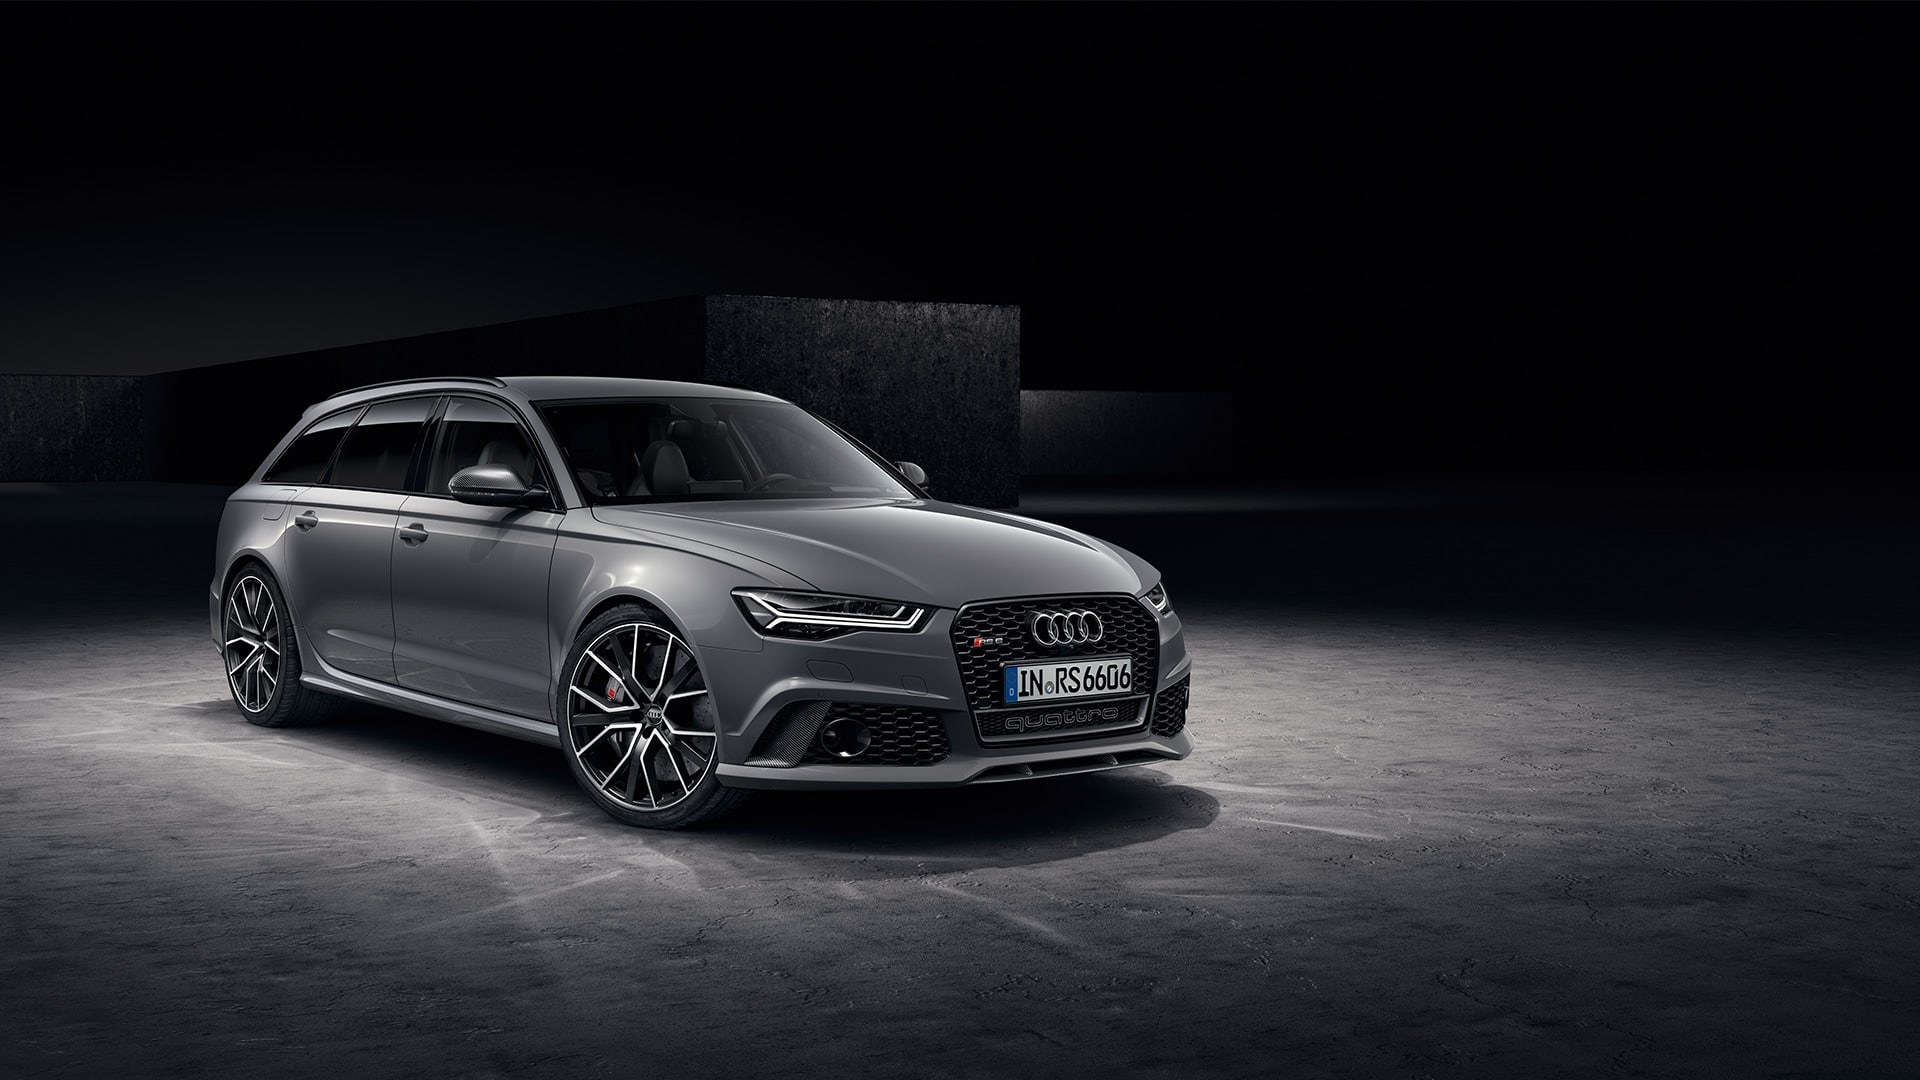 Rs 6 Avant Performance Gt A6 Gt Home Gt Audi Nederland